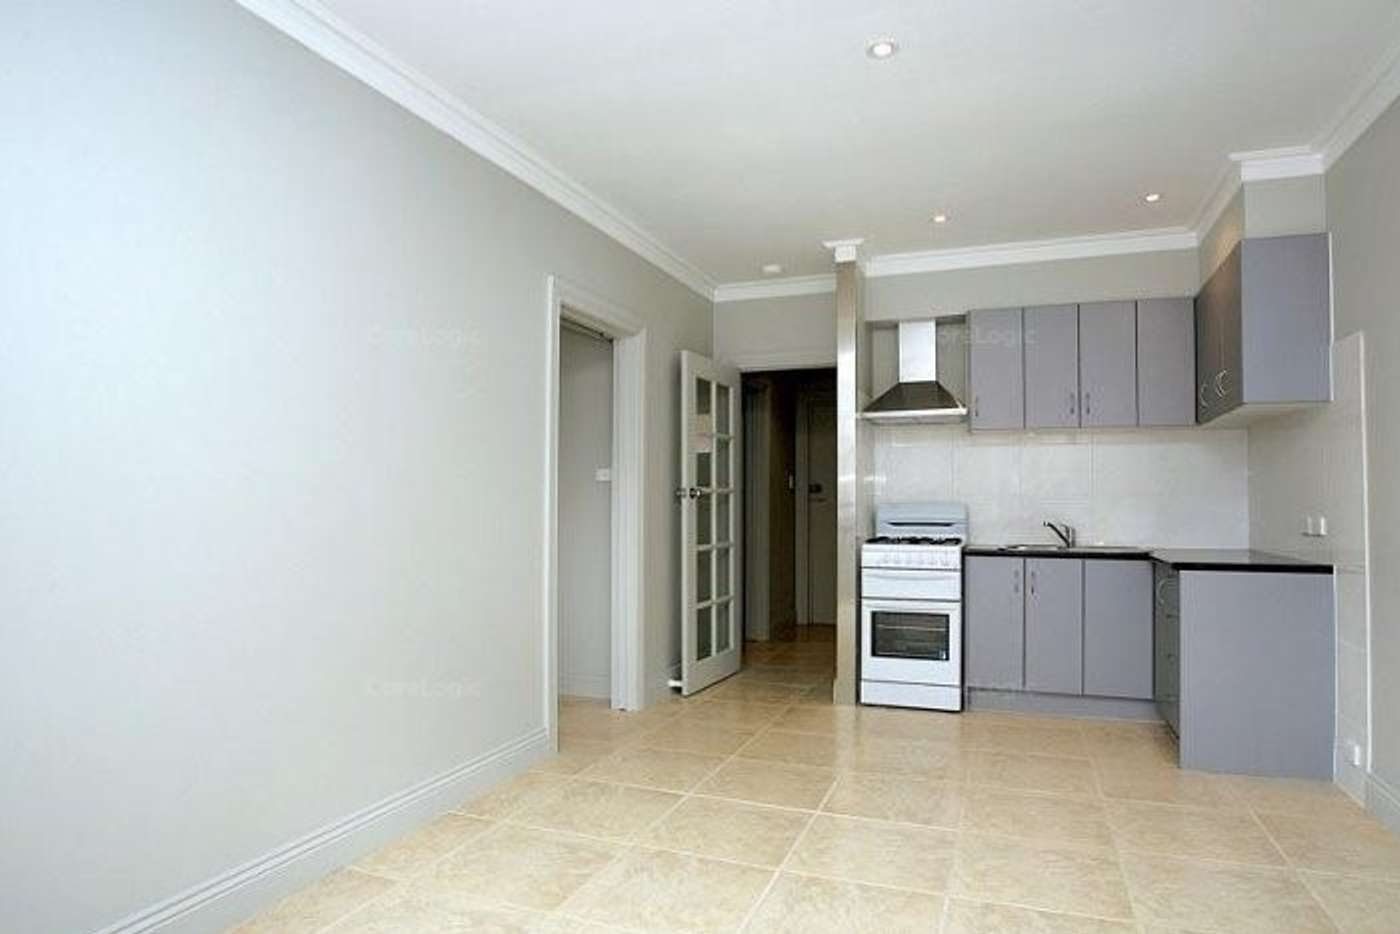 Main view of Homely apartment listing, 10/77 Chapman Street, North Melbourne VIC 3051